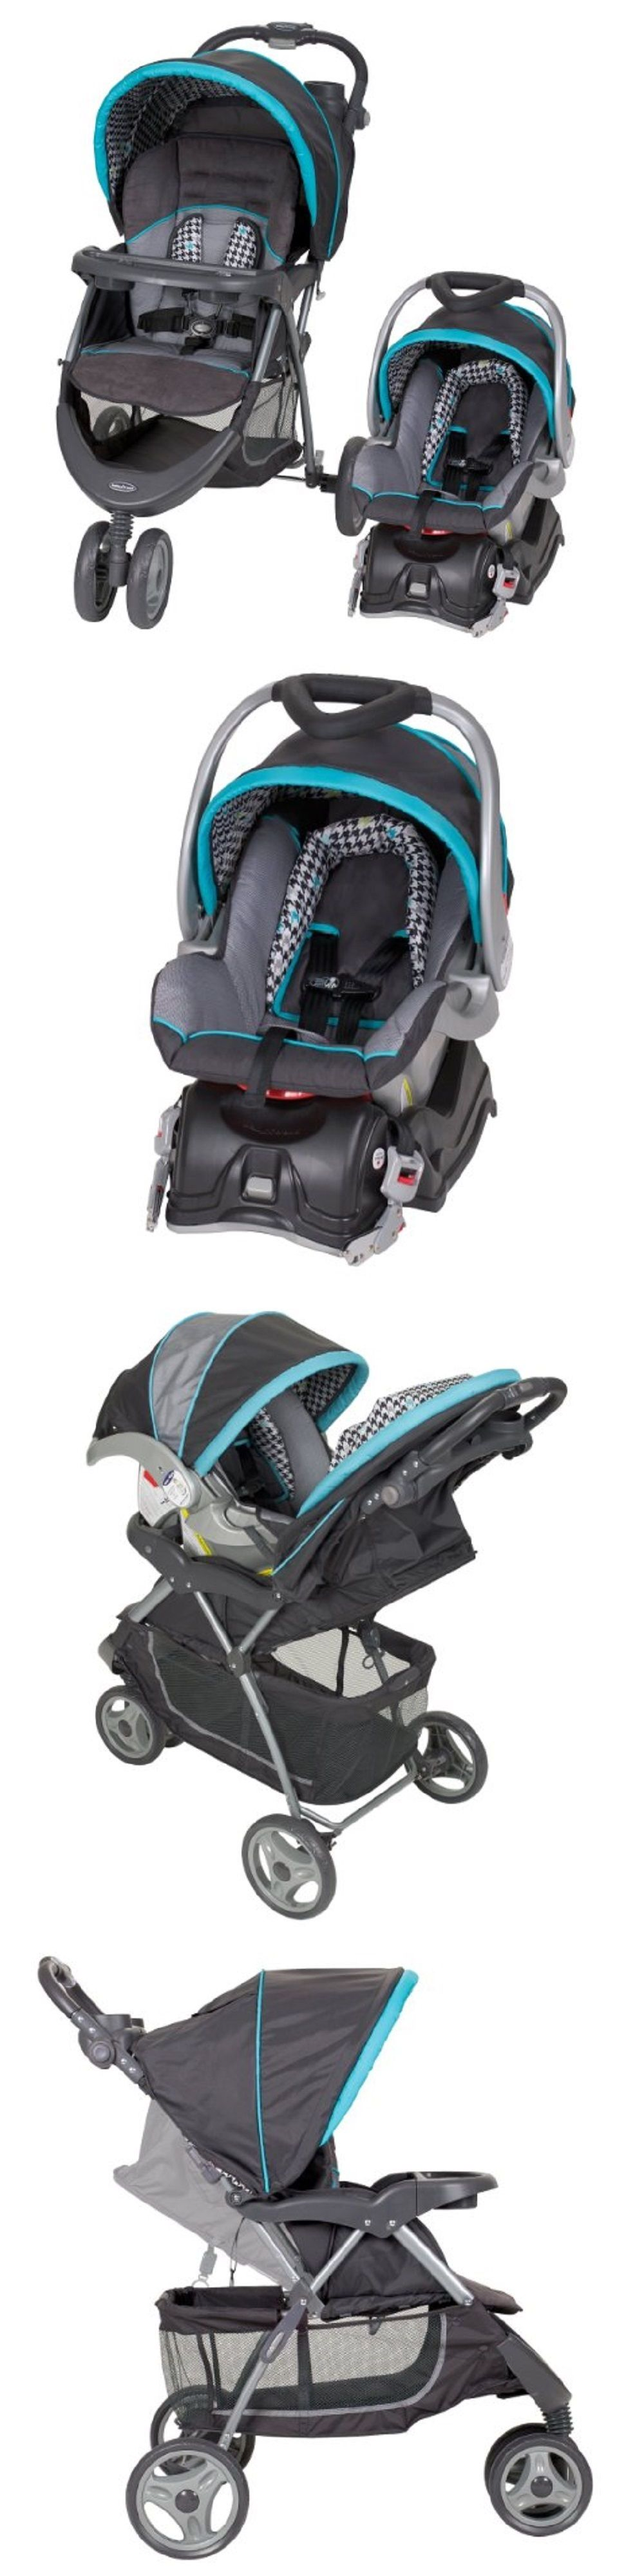 Baby: Travel System With Stroller Pram And Car Seat W Base ...